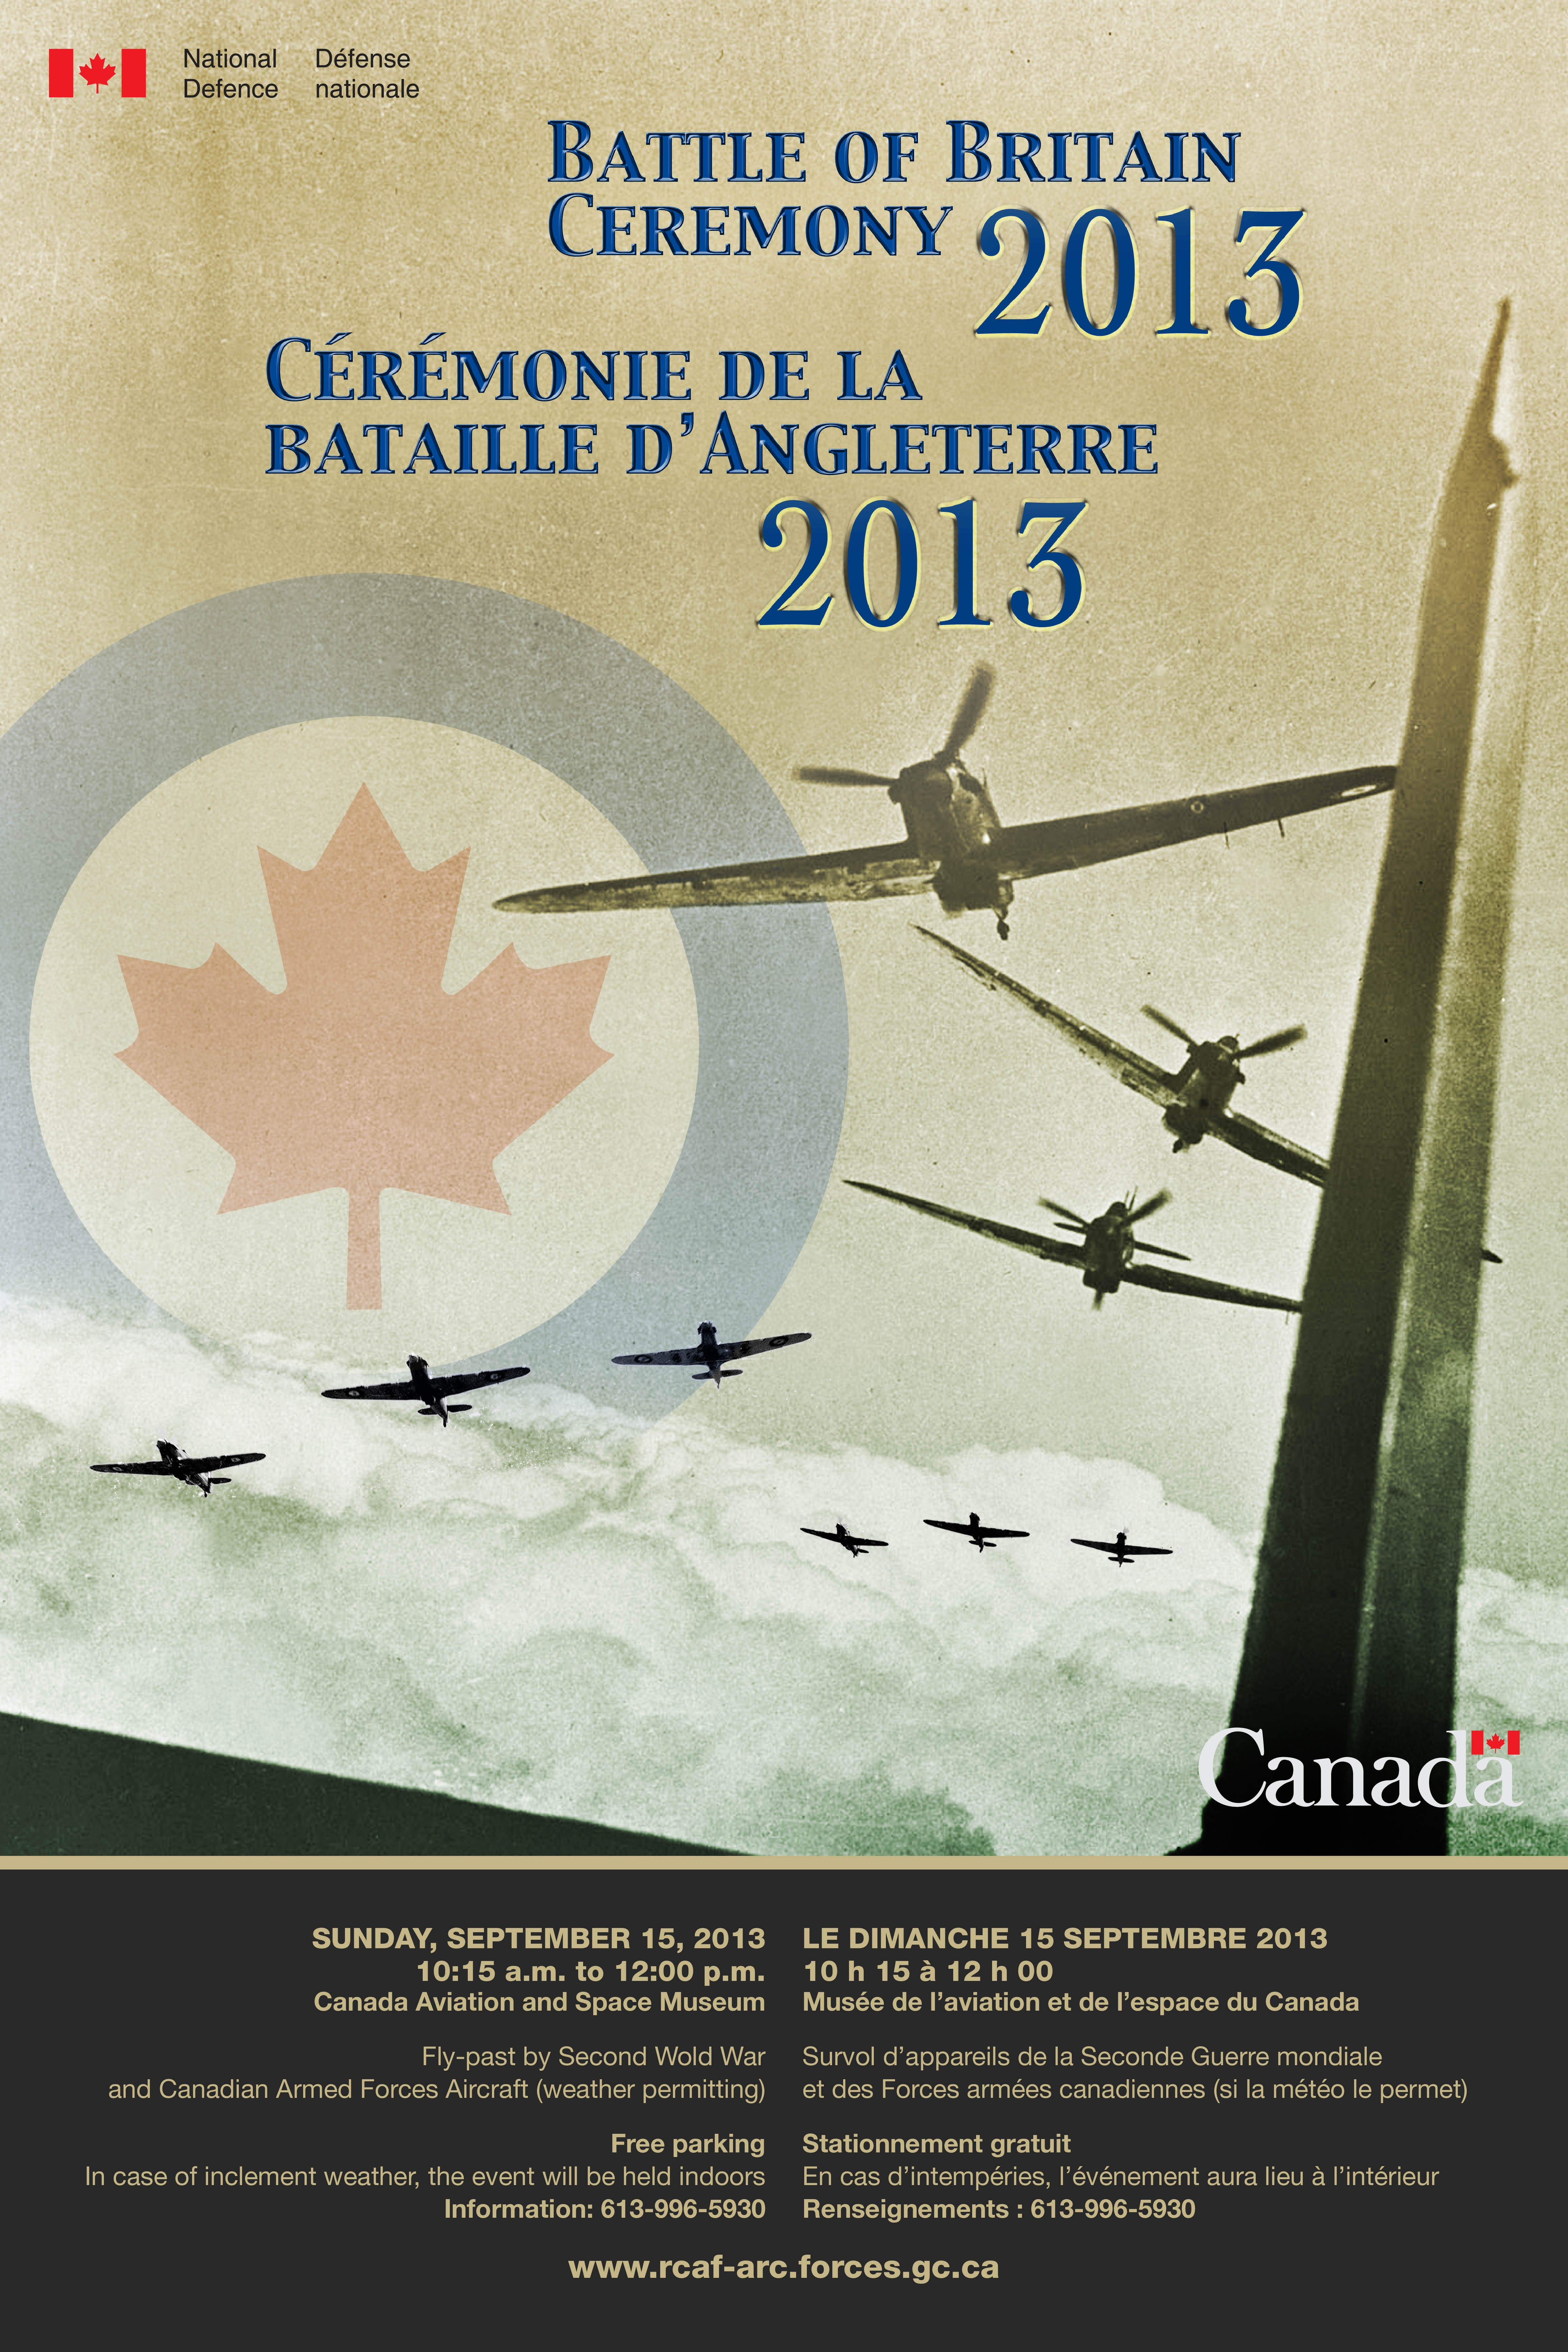 The Battle of Britain will be commemorated across the country on Sunday, September 15, 2013. PHOTO: DND.